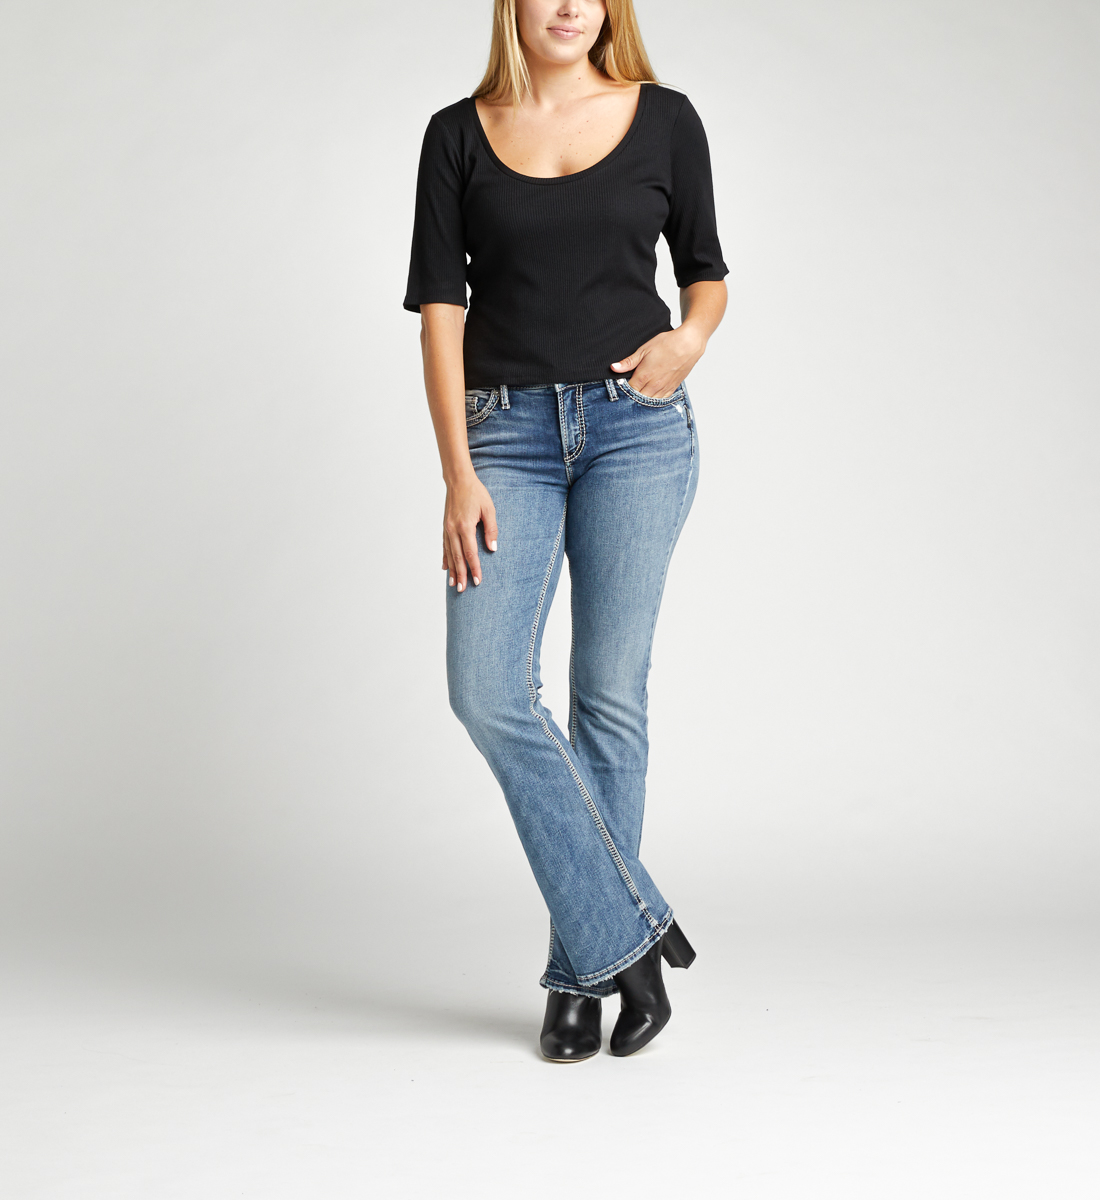 Silver Jeans Elyse Mid Rise Bootcut Jeans